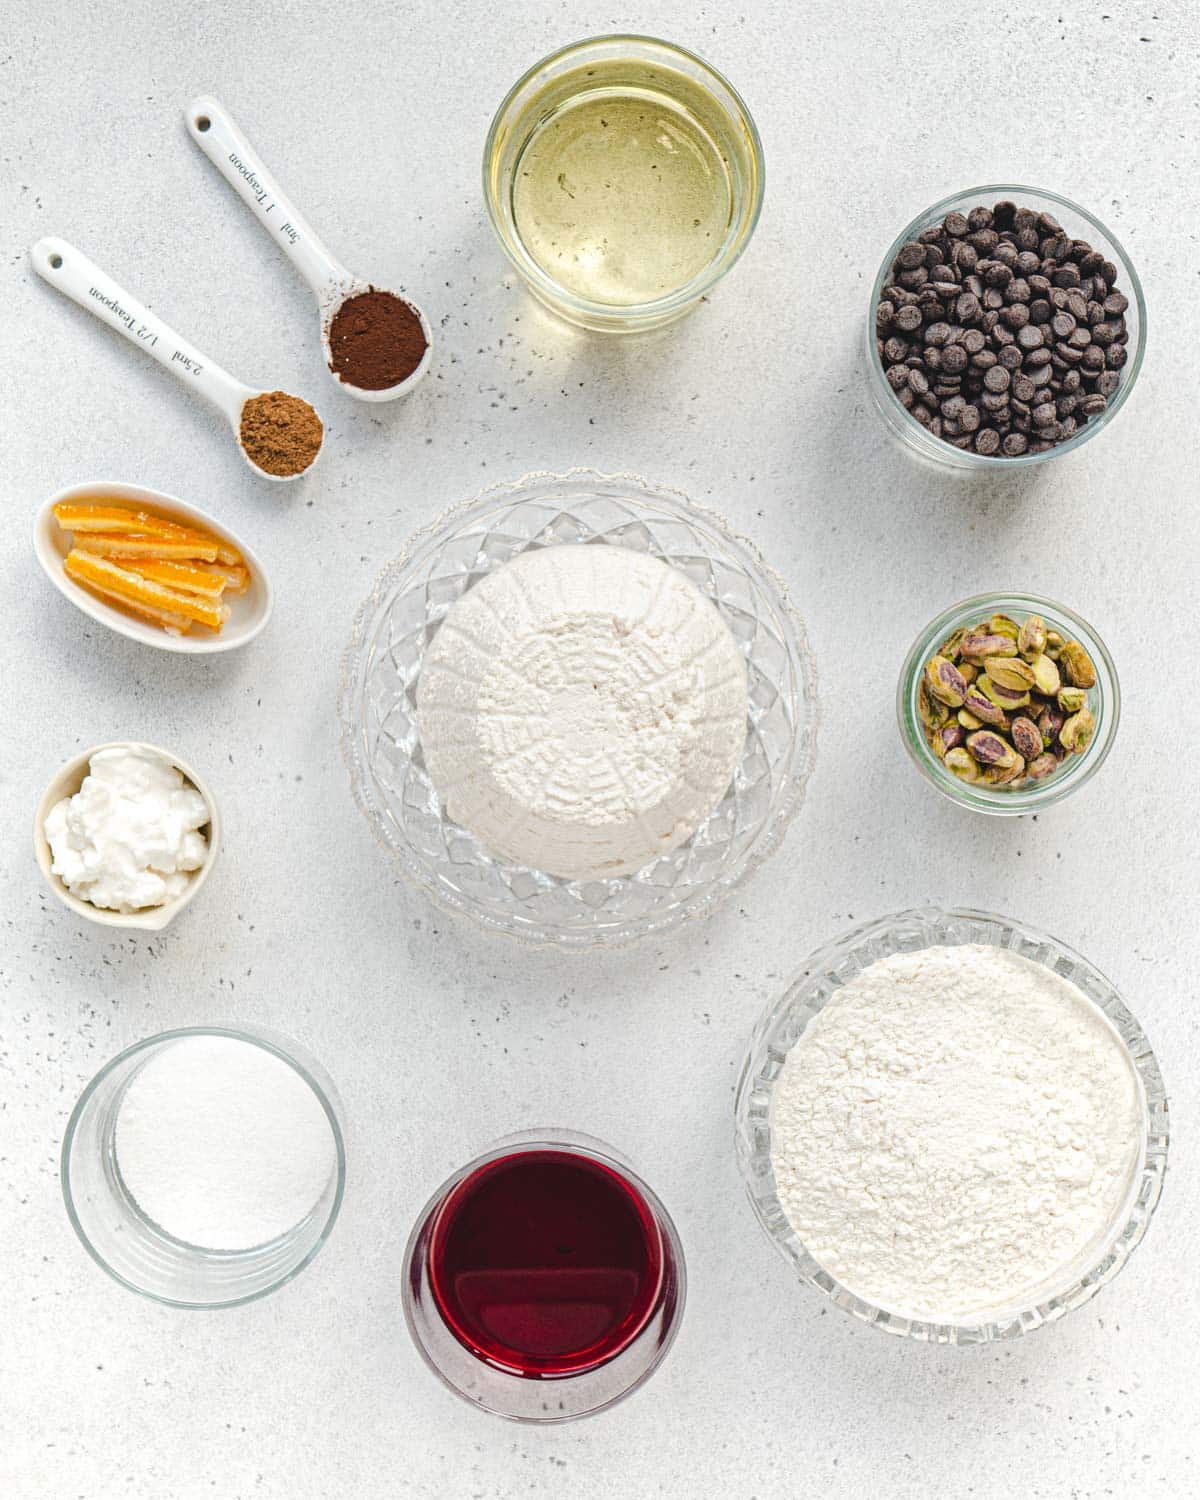 Ingredients for vegan cannoli recipe for filling , shells, and toppings